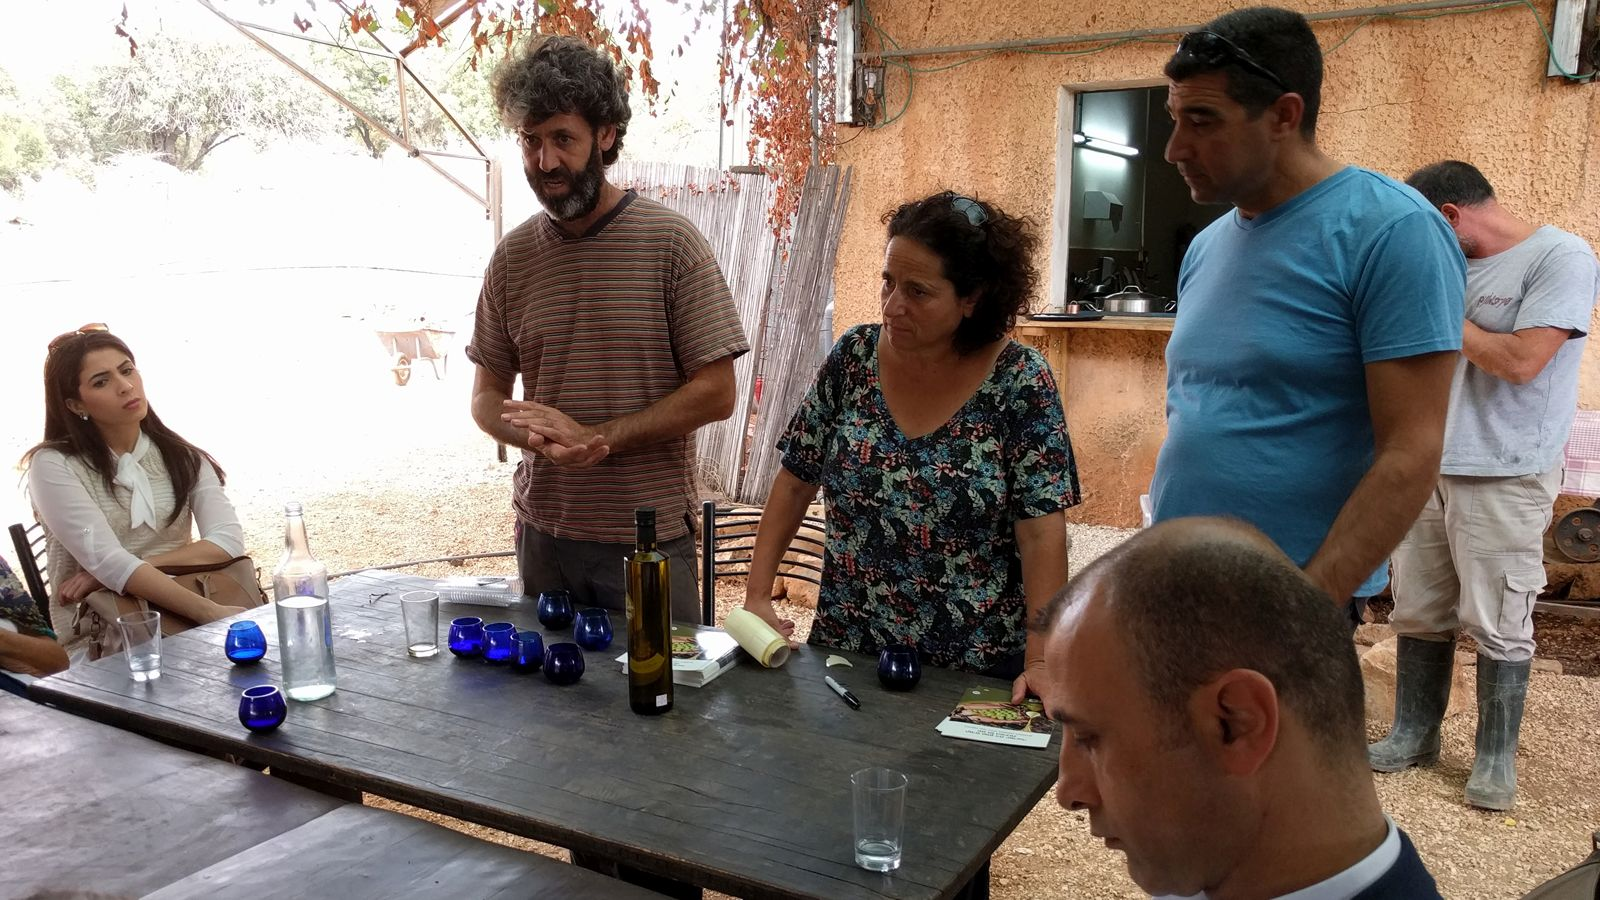 Oil tastings at Ein Camonim. Photo by Viva Sarah Press